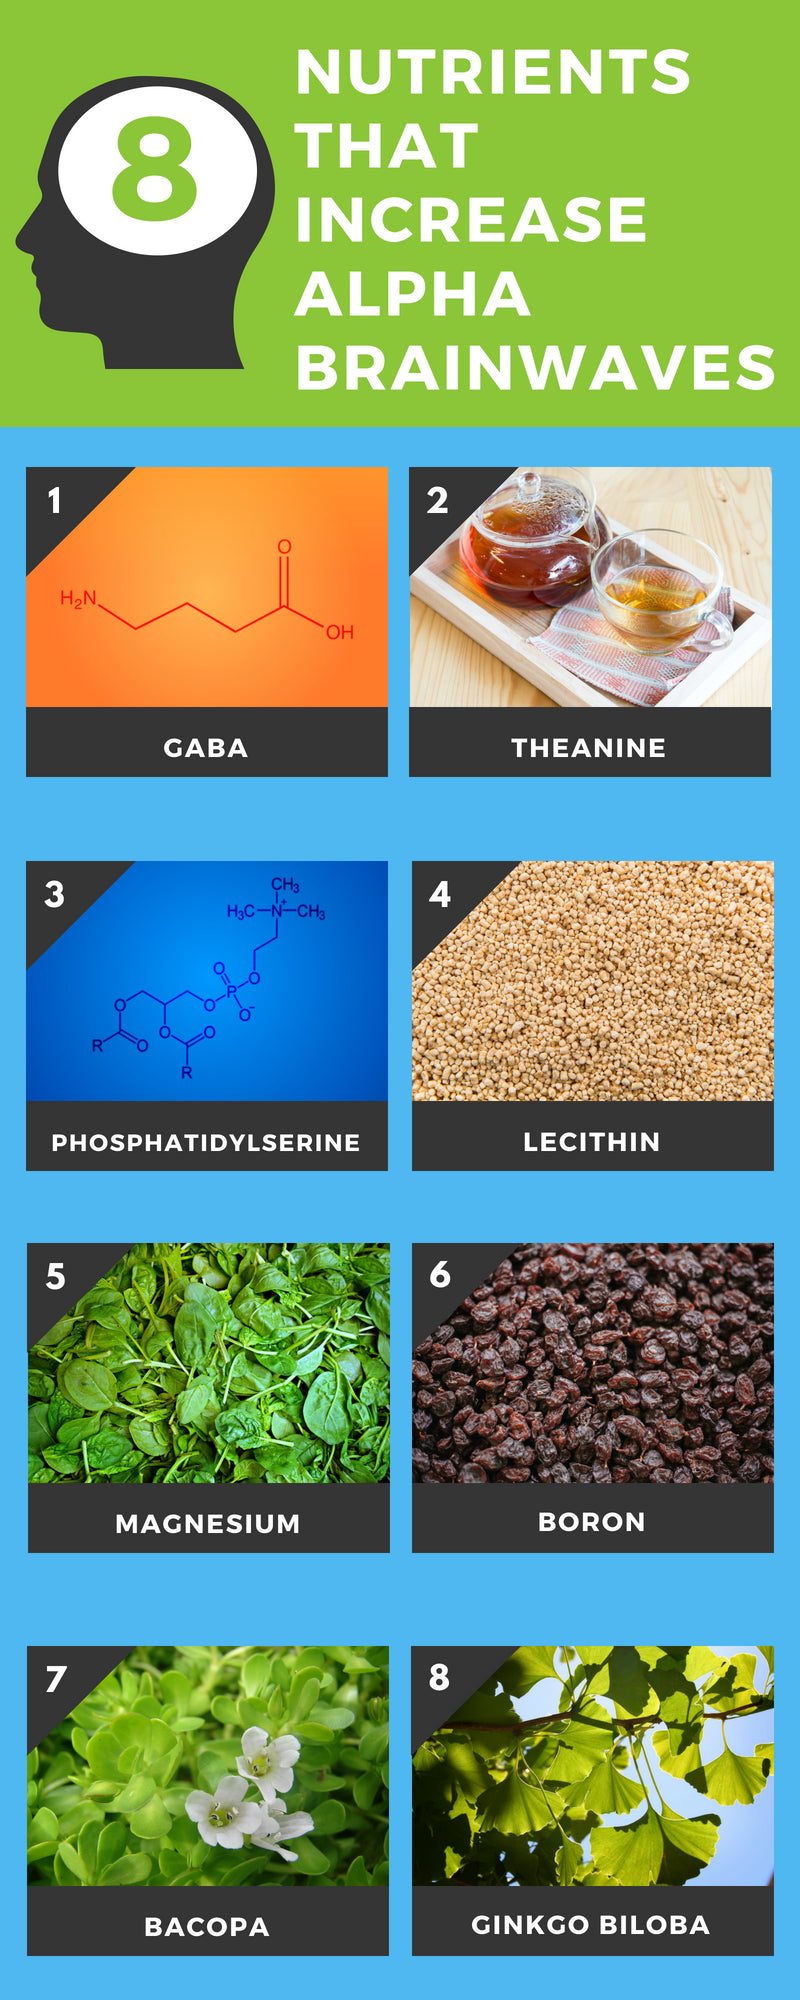 8 Key Nutrients That Increase Alpha Brainwaves Infographic